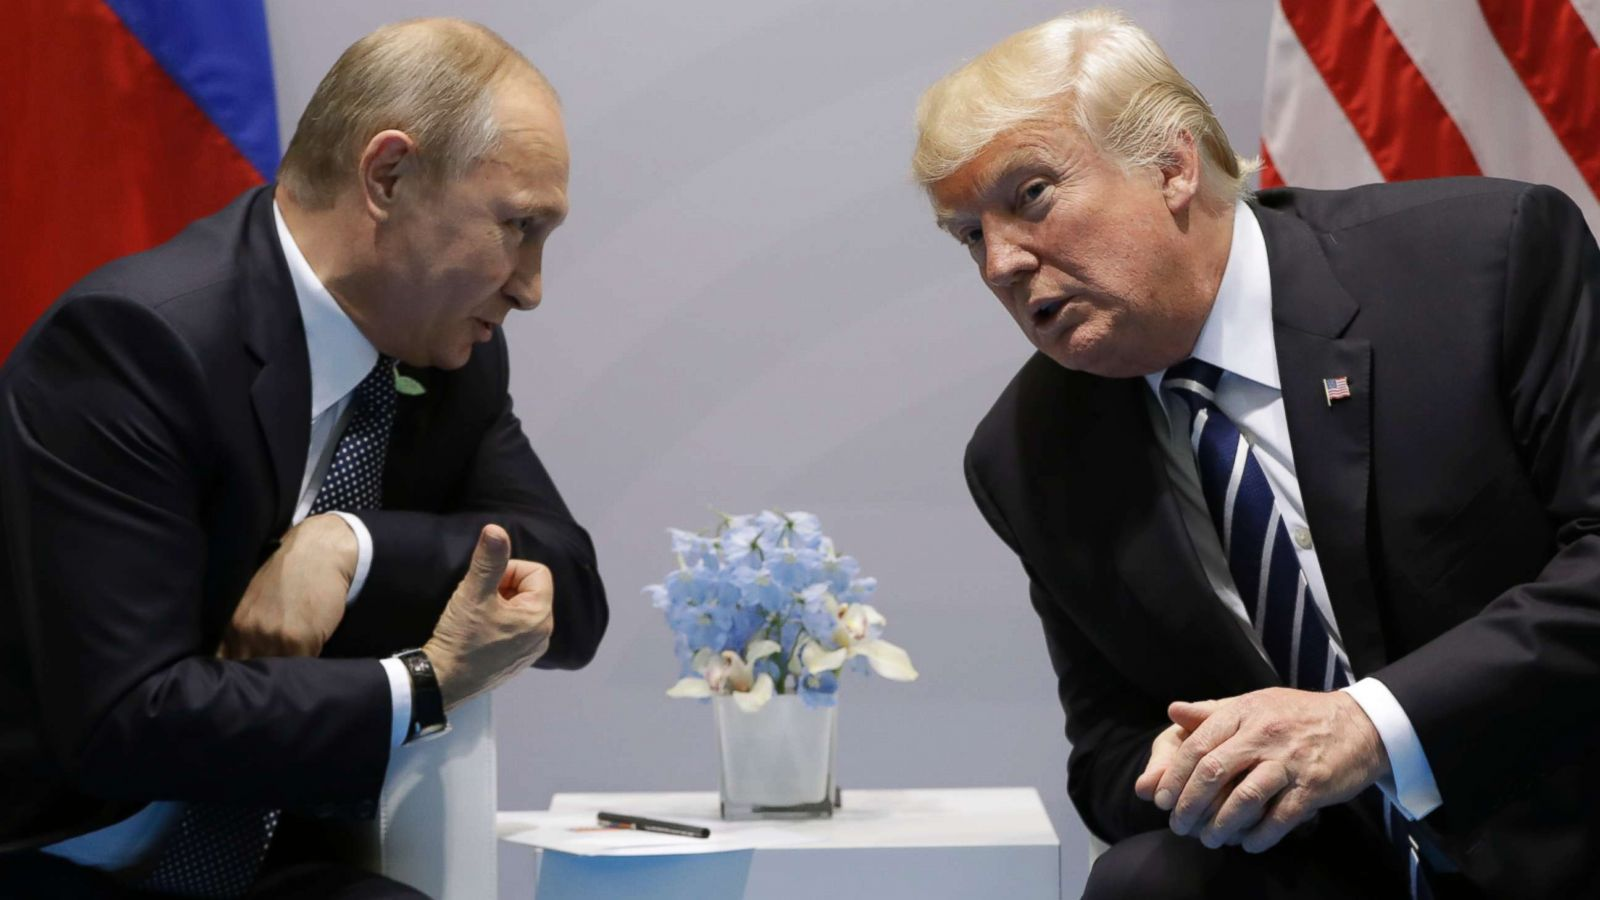 Trump Putin Will Not Have Formal Meeting During Apec Summit White